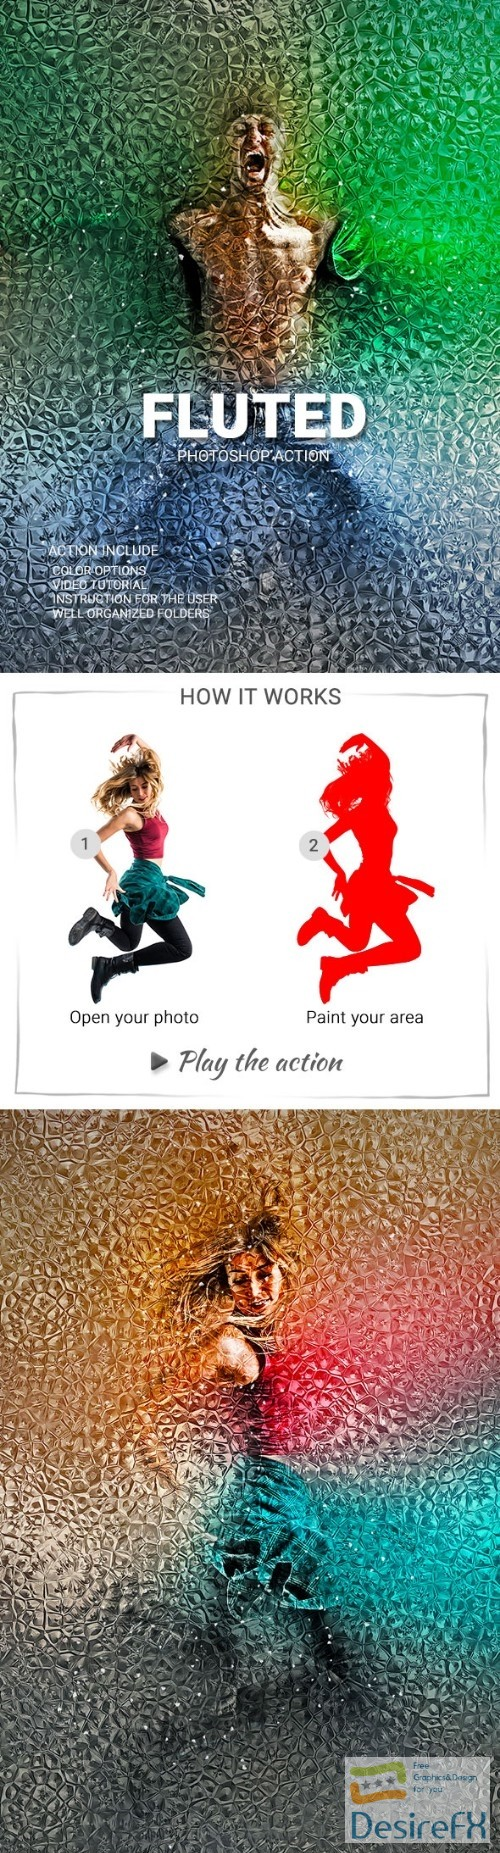 actions-atn - Fluted Photoshop Action 22910346